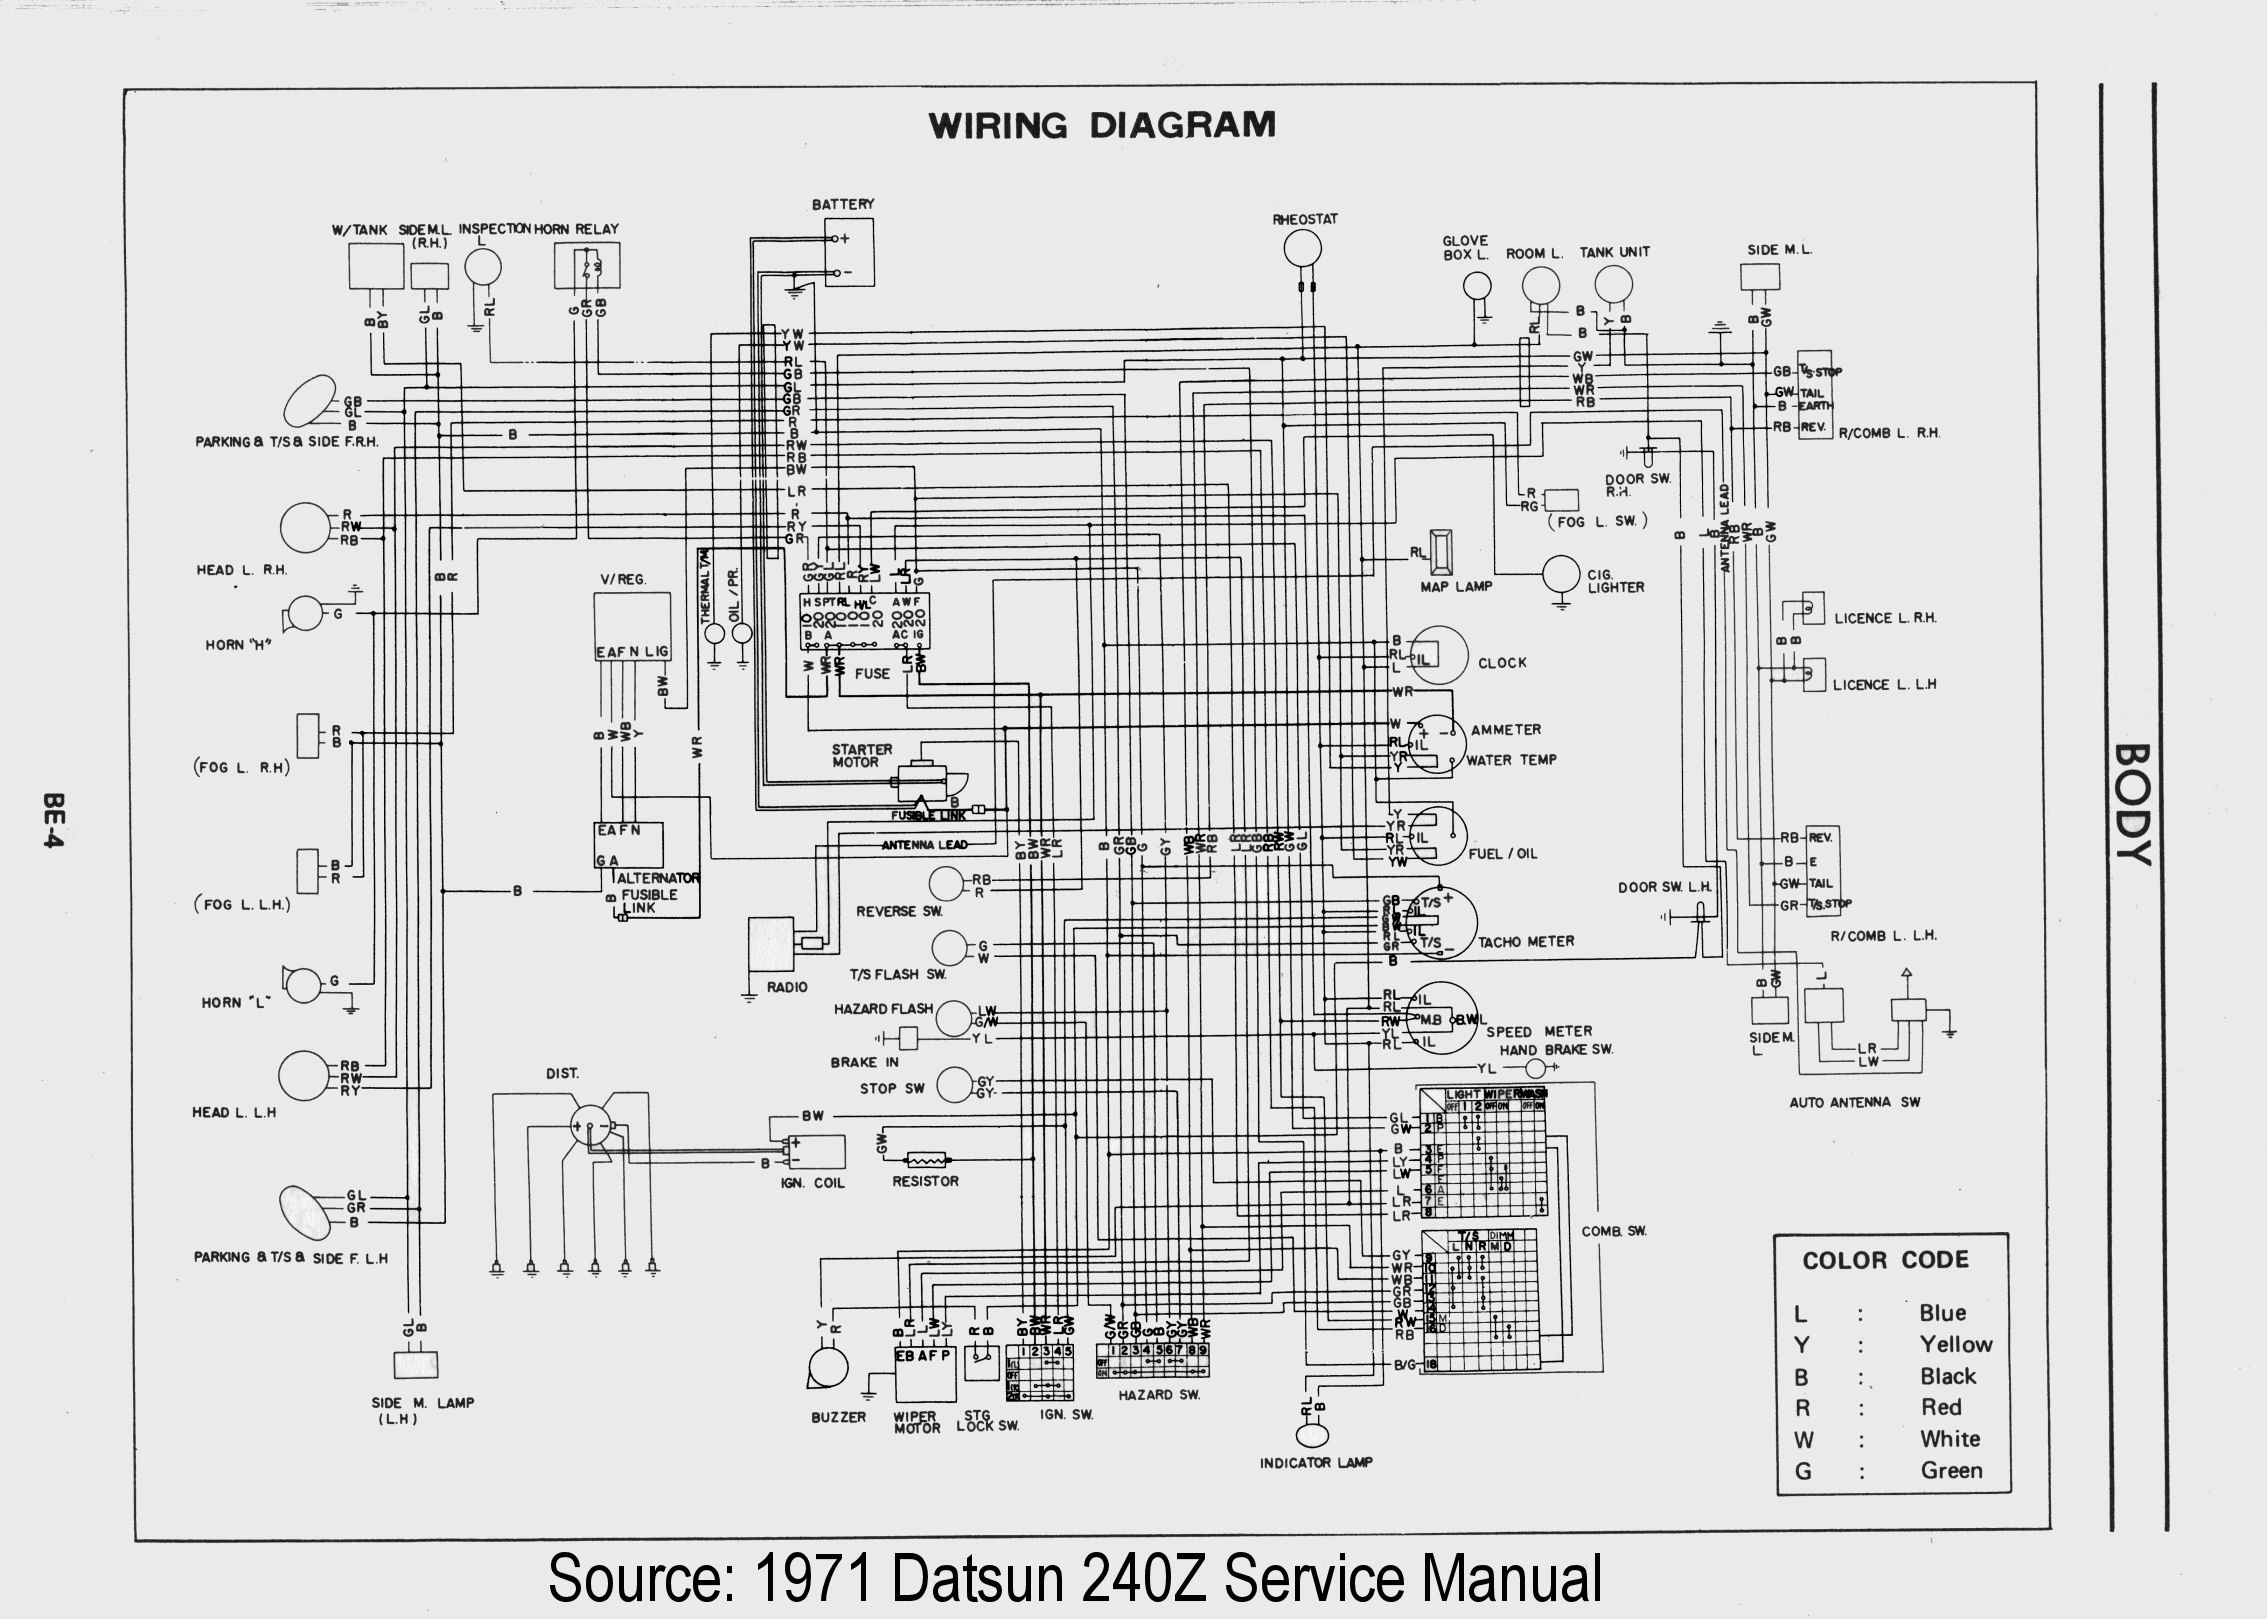 Wiring Diagram HiRes 2 240z wiring diagram 73 240z wiring diagram \u2022 wiring diagrams j In a 98 Dodge Dakota Wiring Harness at couponss.co